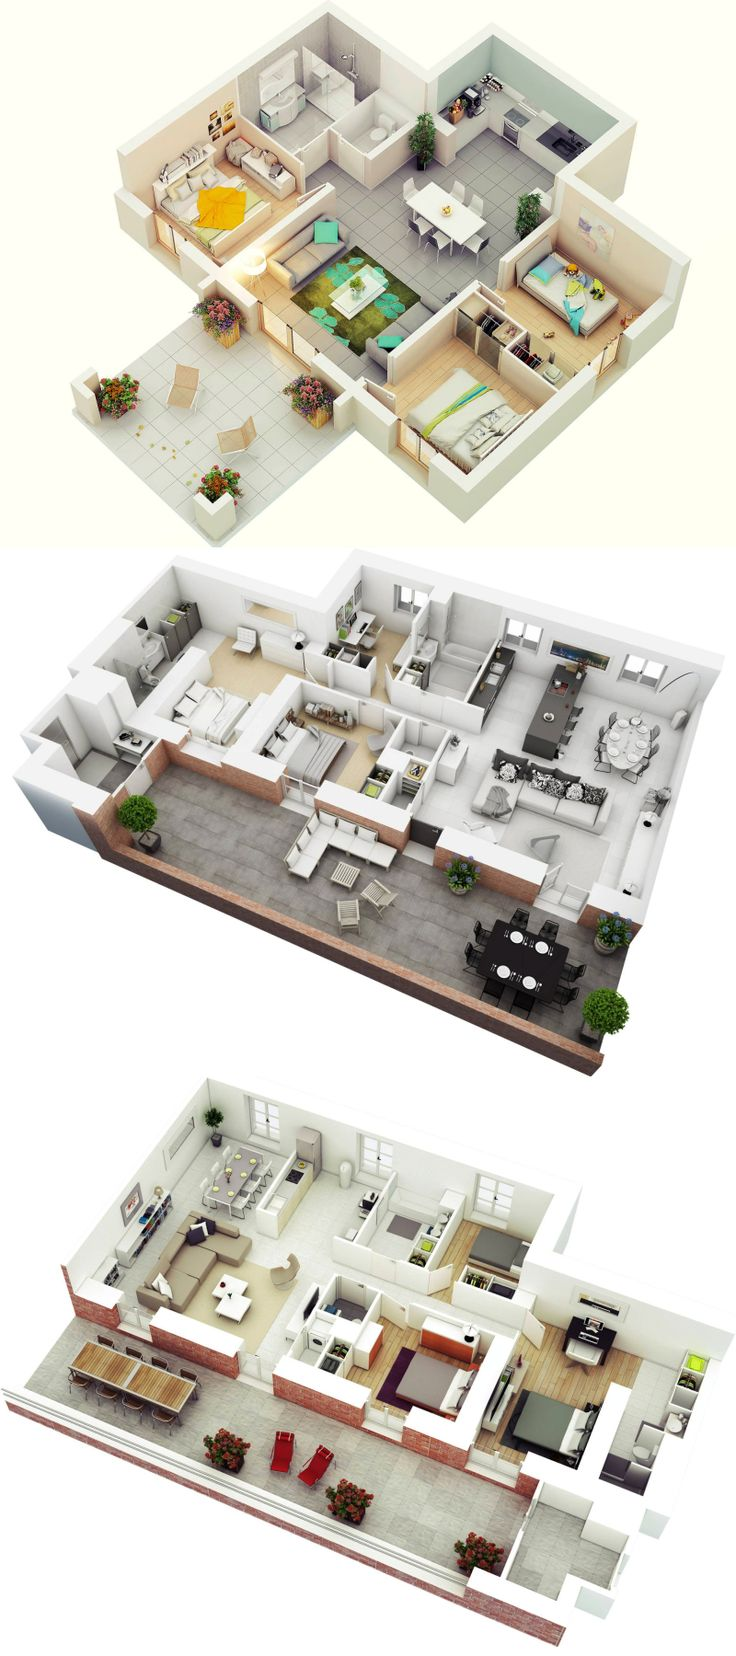 3 Bedroom 3 D Floor Plans | Visualizer: Jeremy Gamelin